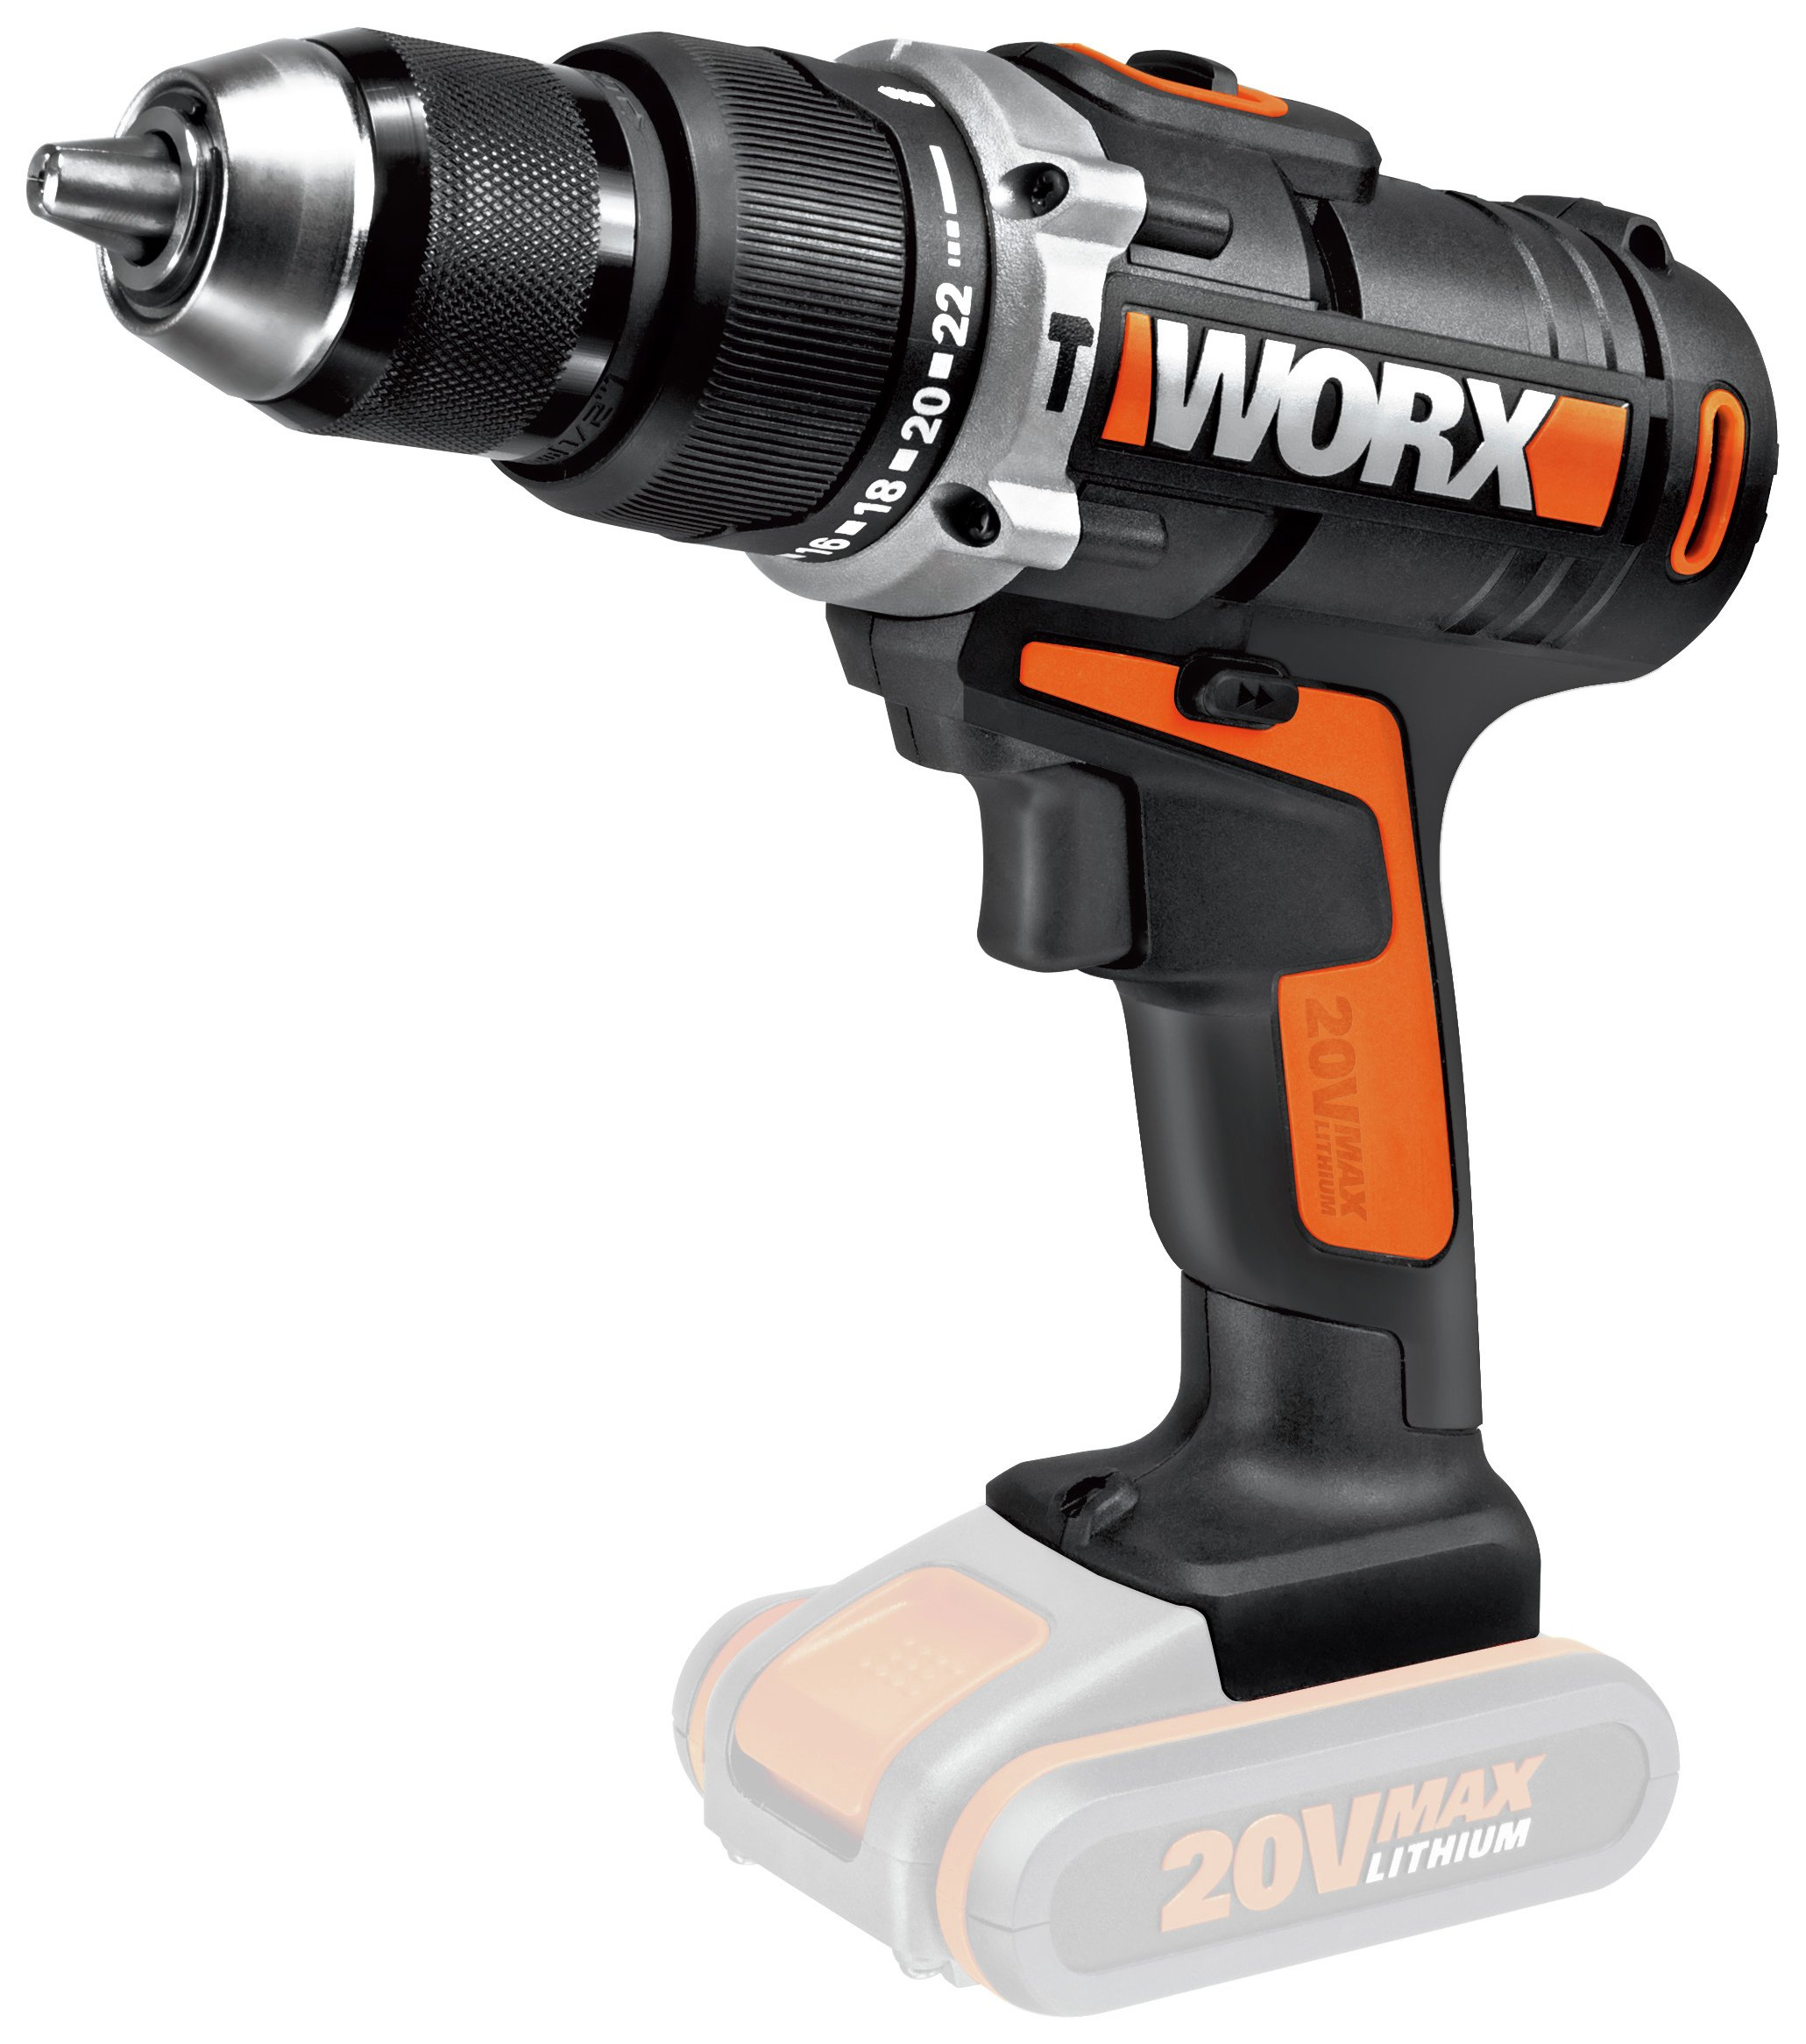 worx cordless hammer drill no battery gay times uk. Black Bedroom Furniture Sets. Home Design Ideas